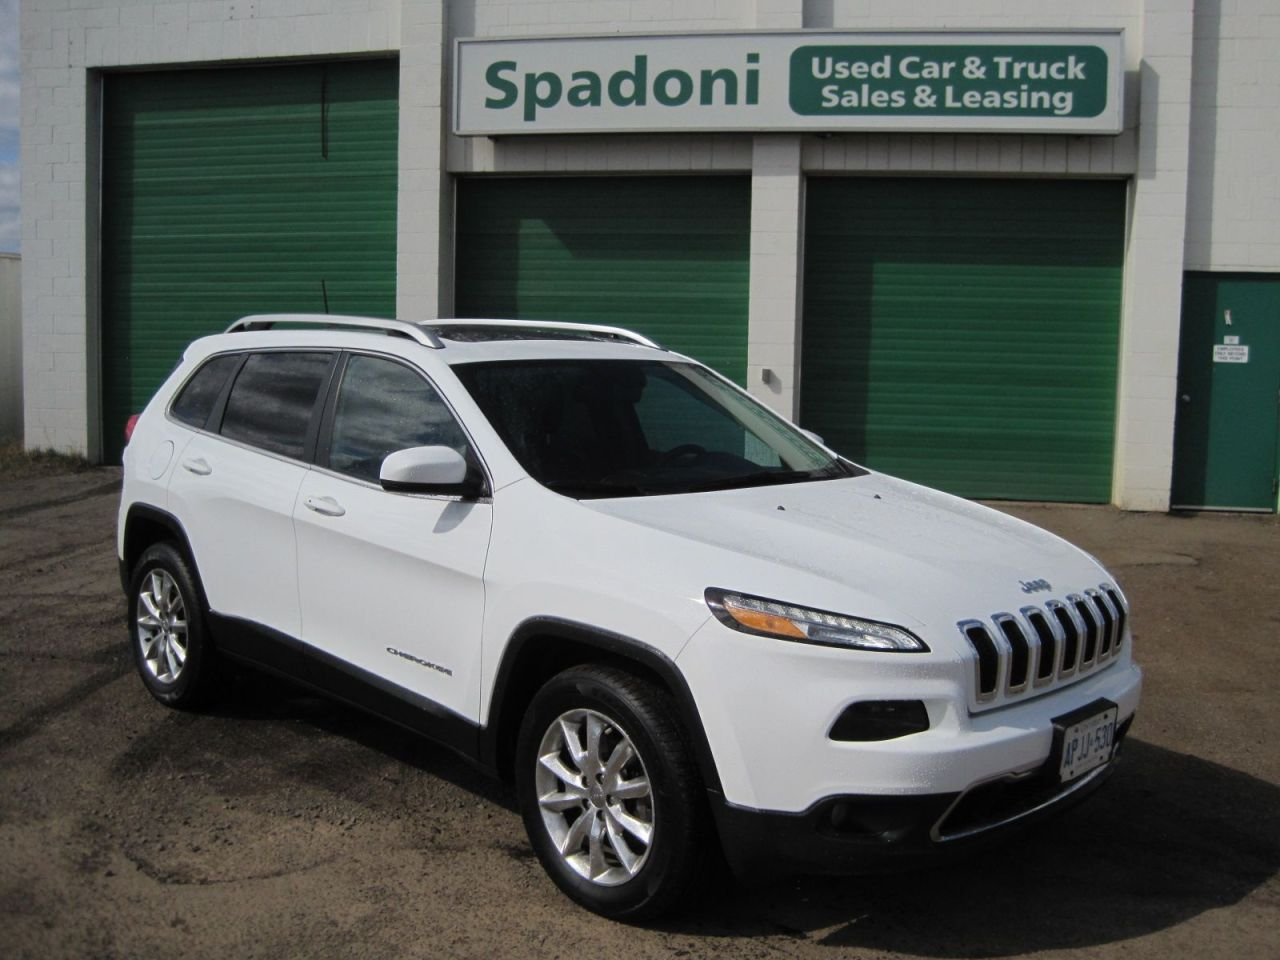 billet city for oklahoma cherokee htm lease image near ok gallery jeep midwest limited silver norman new sale